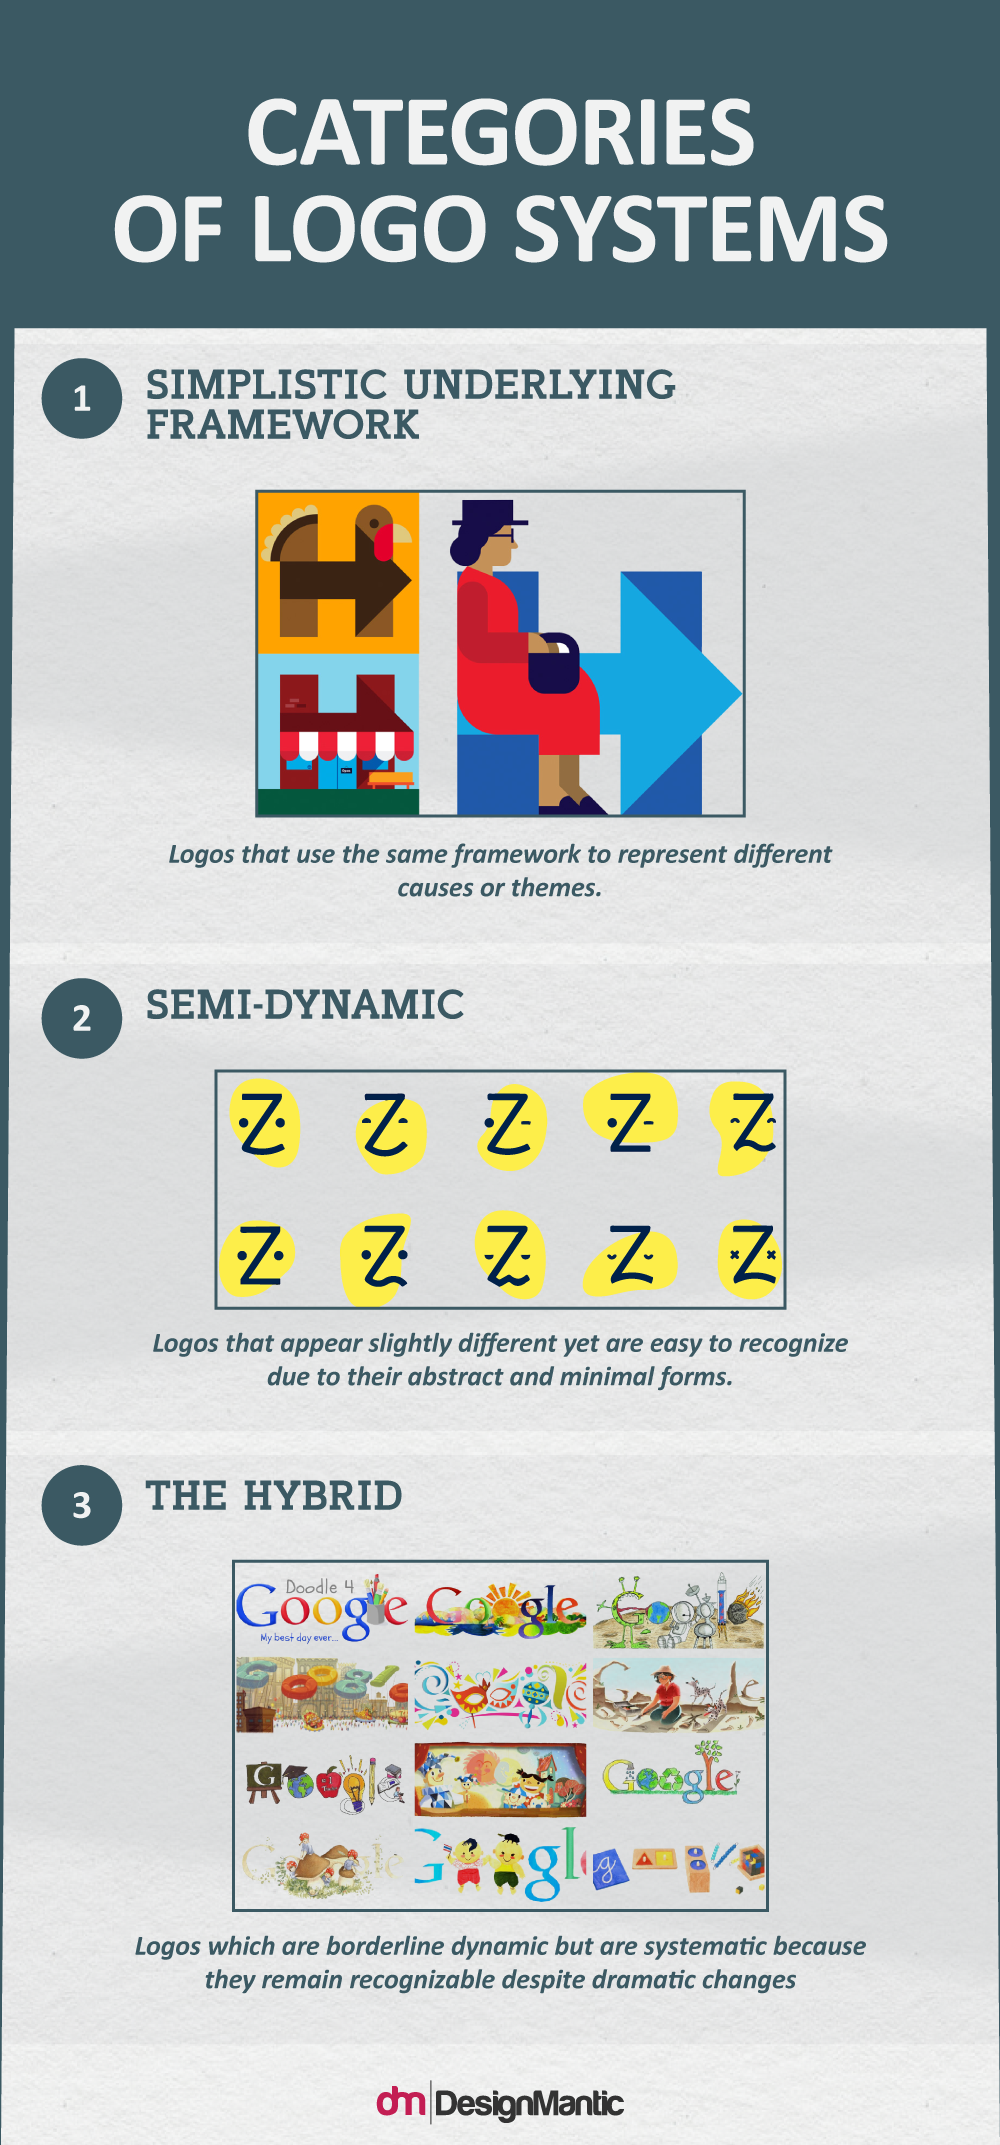 3 Types of Logo Systems